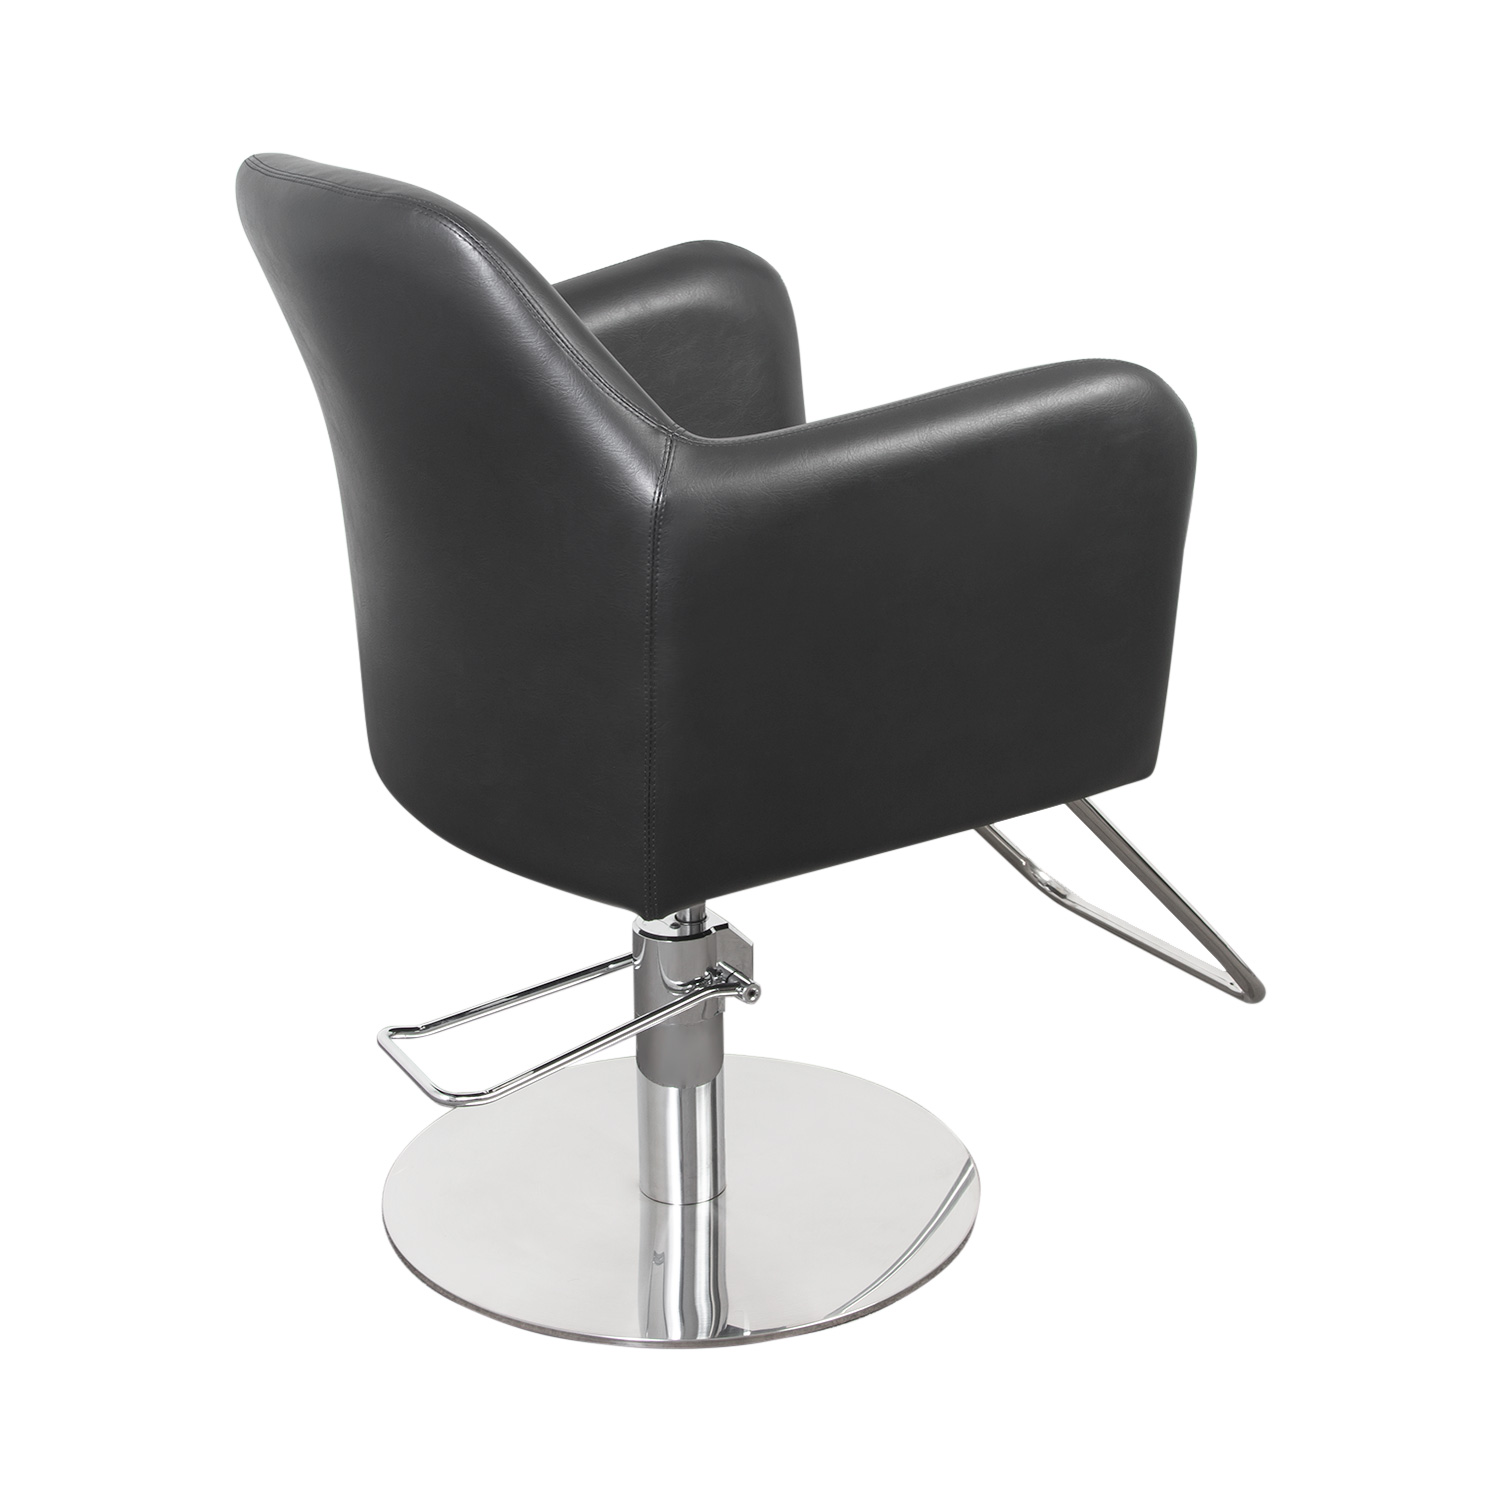 Loft Hair Stylist Chair alternative product image 3